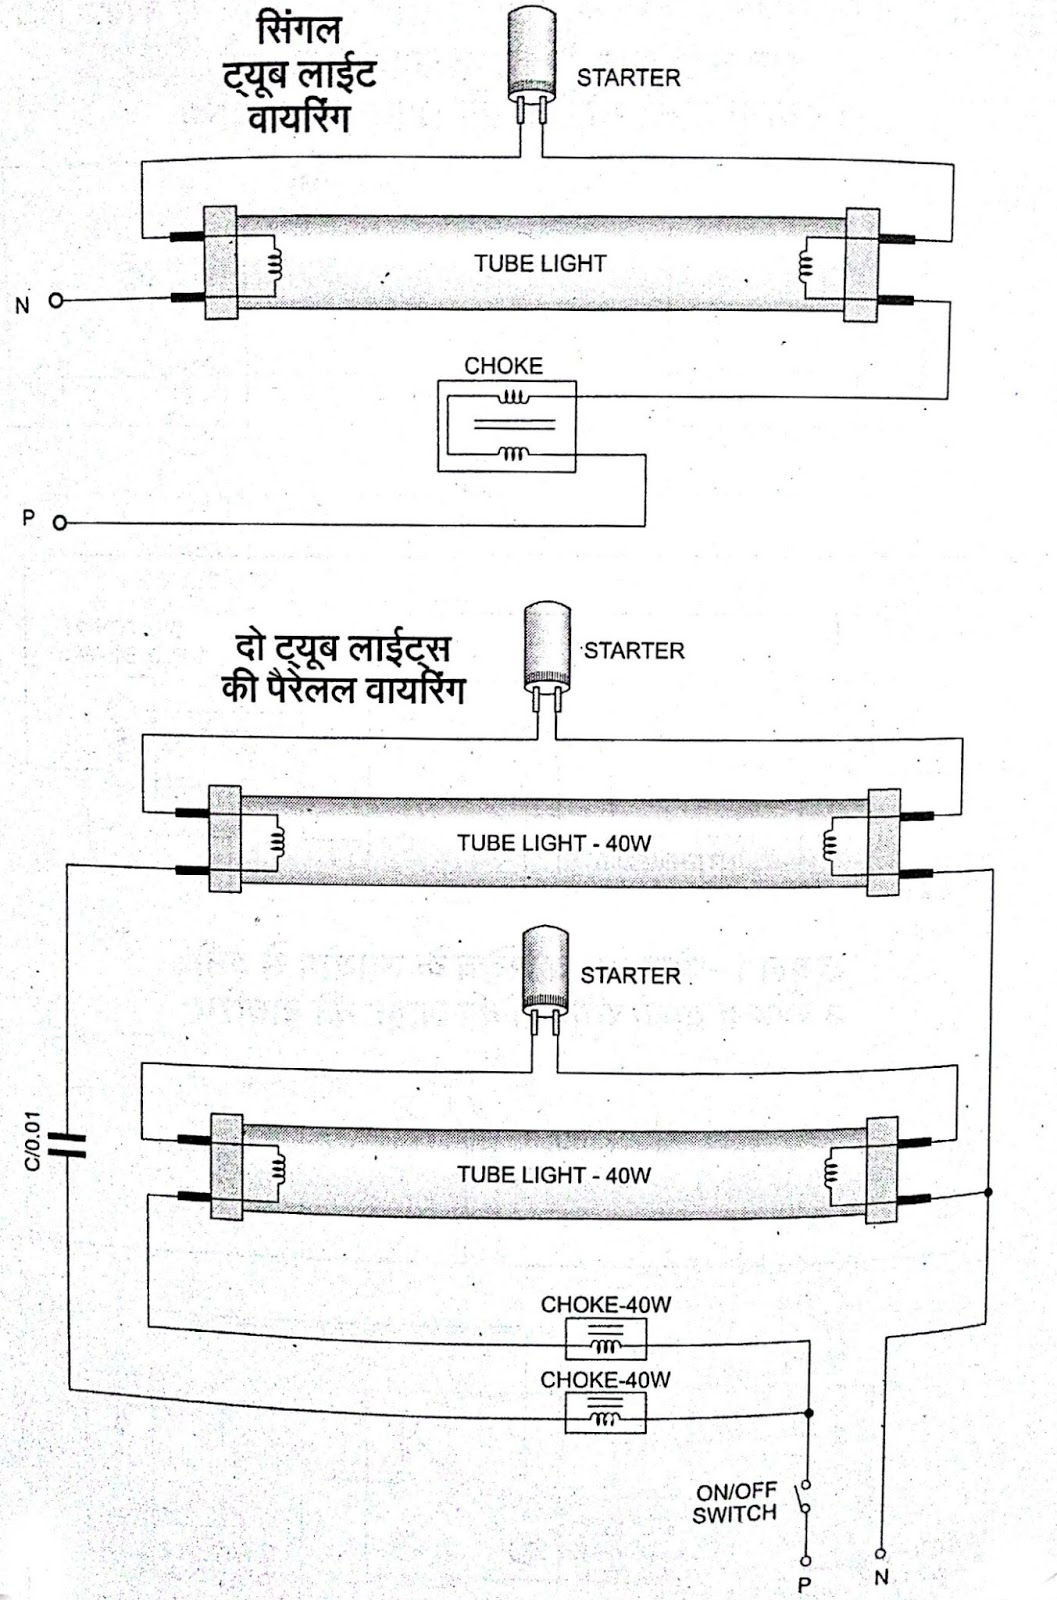 Tubelight_connection%255B1%255D learn electrician tube light wiring connections choke wiring diagram for merc 225 carb at beritabola.co